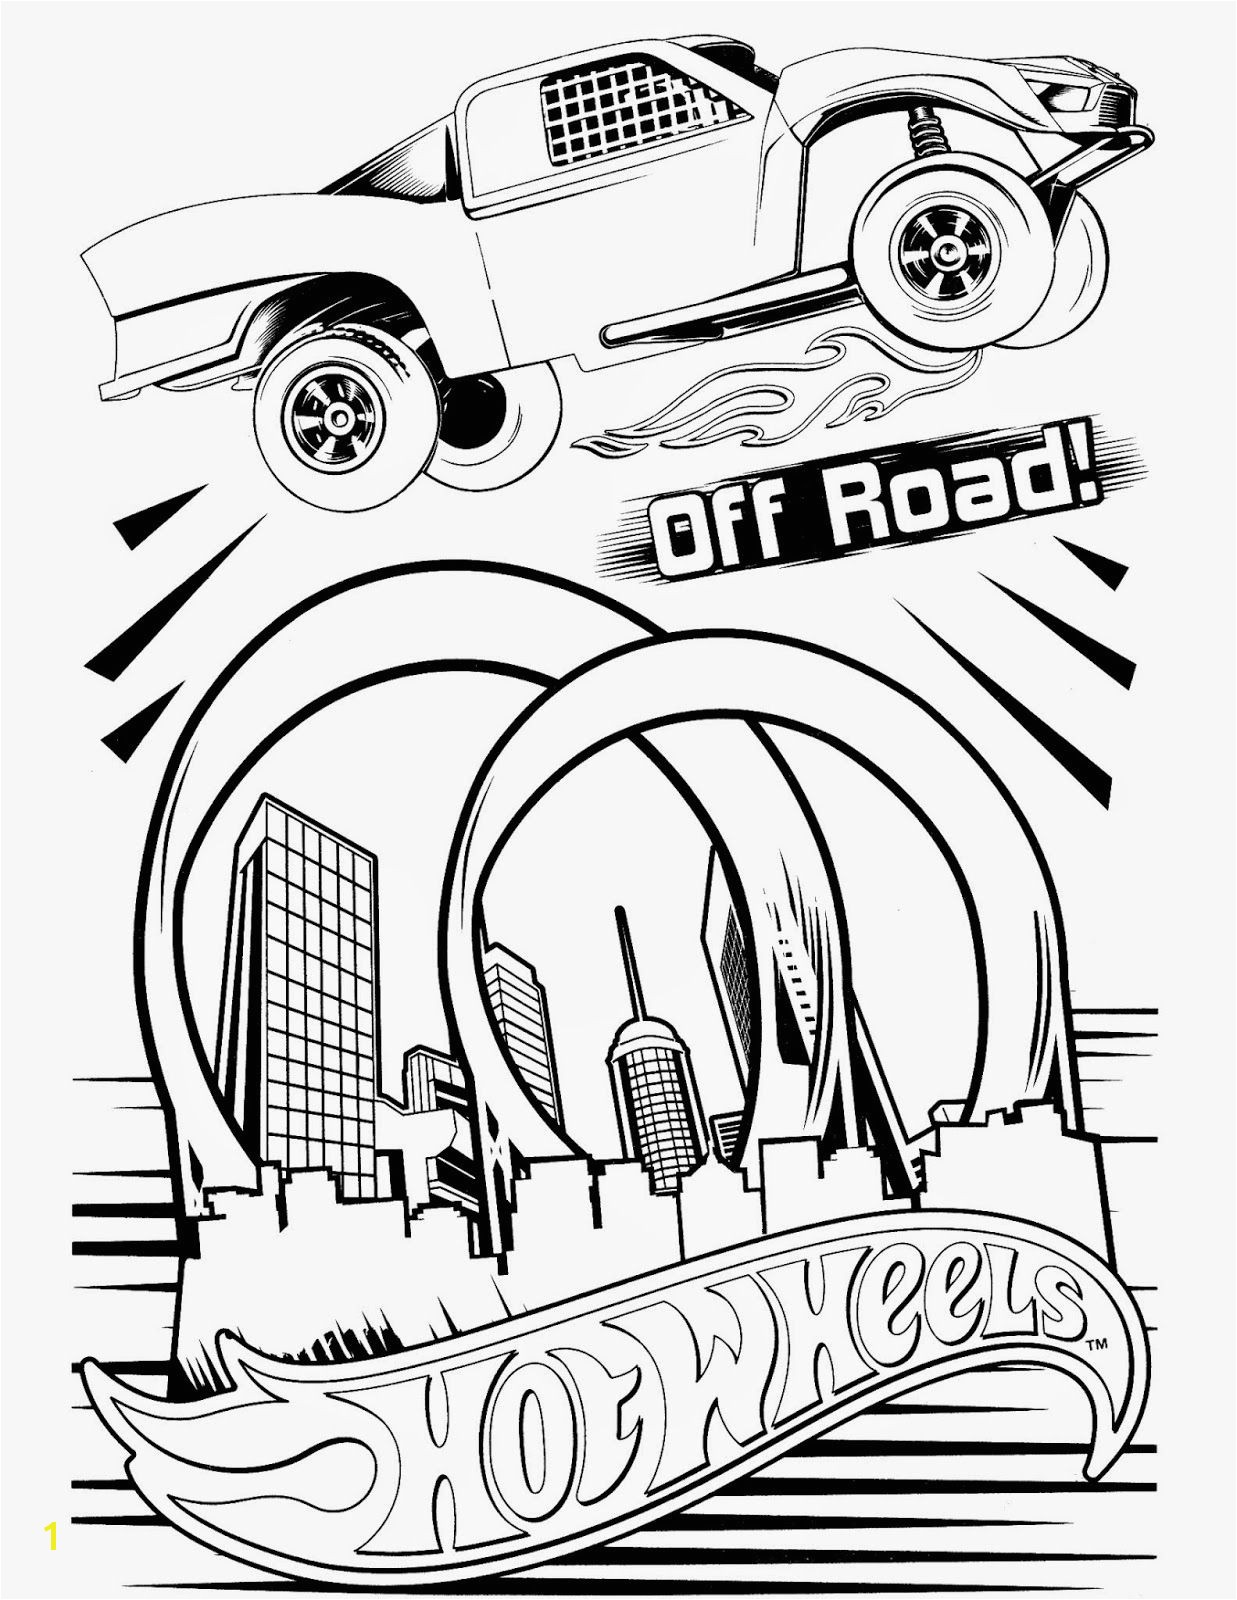 Hot Wheels Coloring Pages Set 5 A huge collection of Hot Wheels coloring pages hotwheels coloringpages